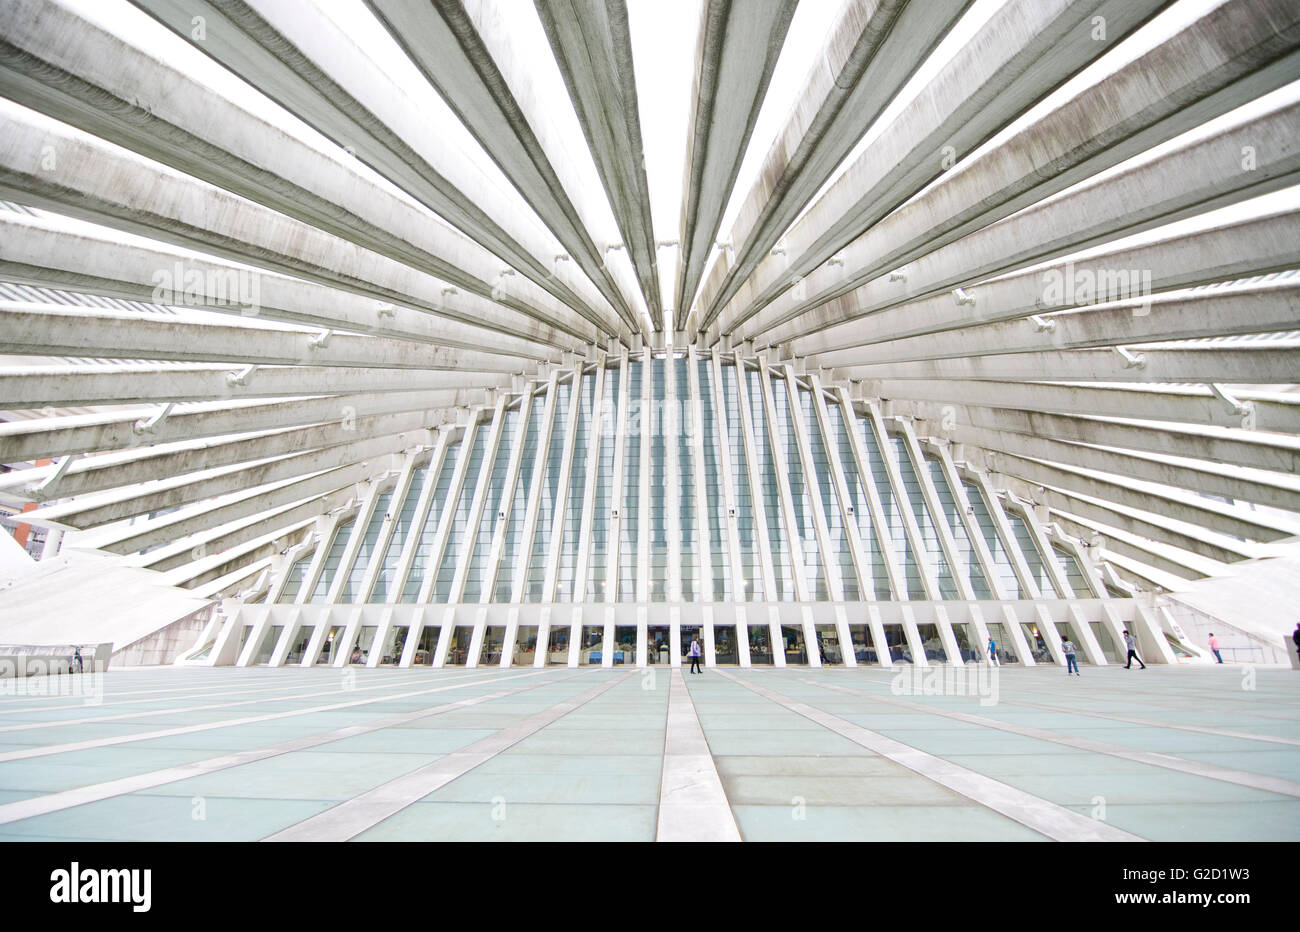 Oviedo, Spain. 27th May, 2016. Outside of Congress Palace, building by Spanish neofuturistic architec Santiago Calatrava - Stock Image